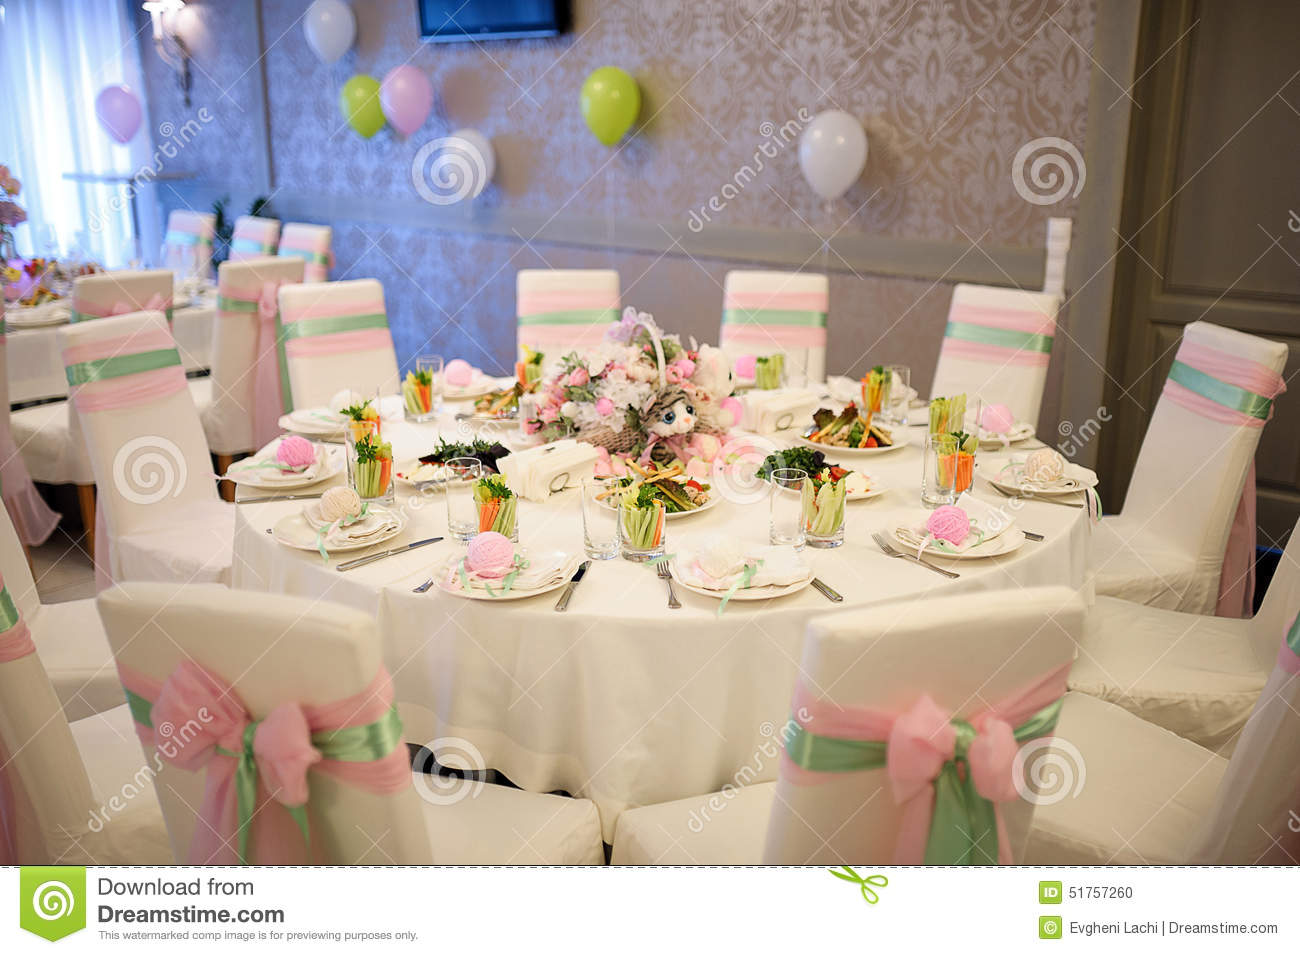 arrangement de table d 39 anniversaire de banquet photo stock image 51757260. Black Bedroom Furniture Sets. Home Design Ideas